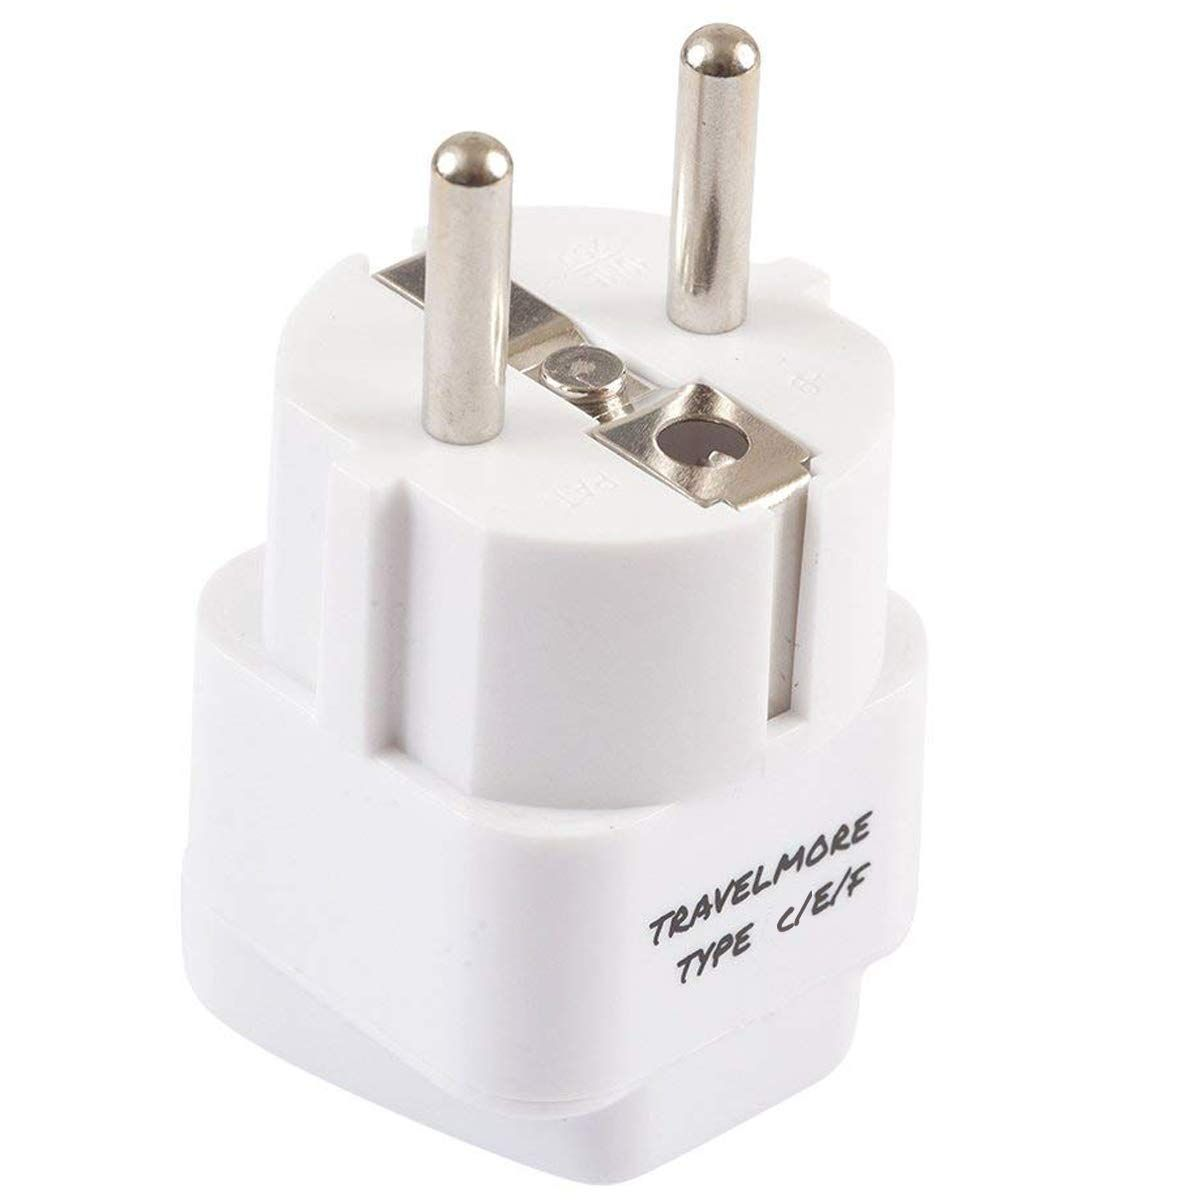 2 Pack European Travel Adapter Plug For European Outlets Type C Type E Type F Europe Plug Adapter Wor Travel Adapter Plugs Travel Adapter European Travel - 37+ What Is A Type F Plug? Pics